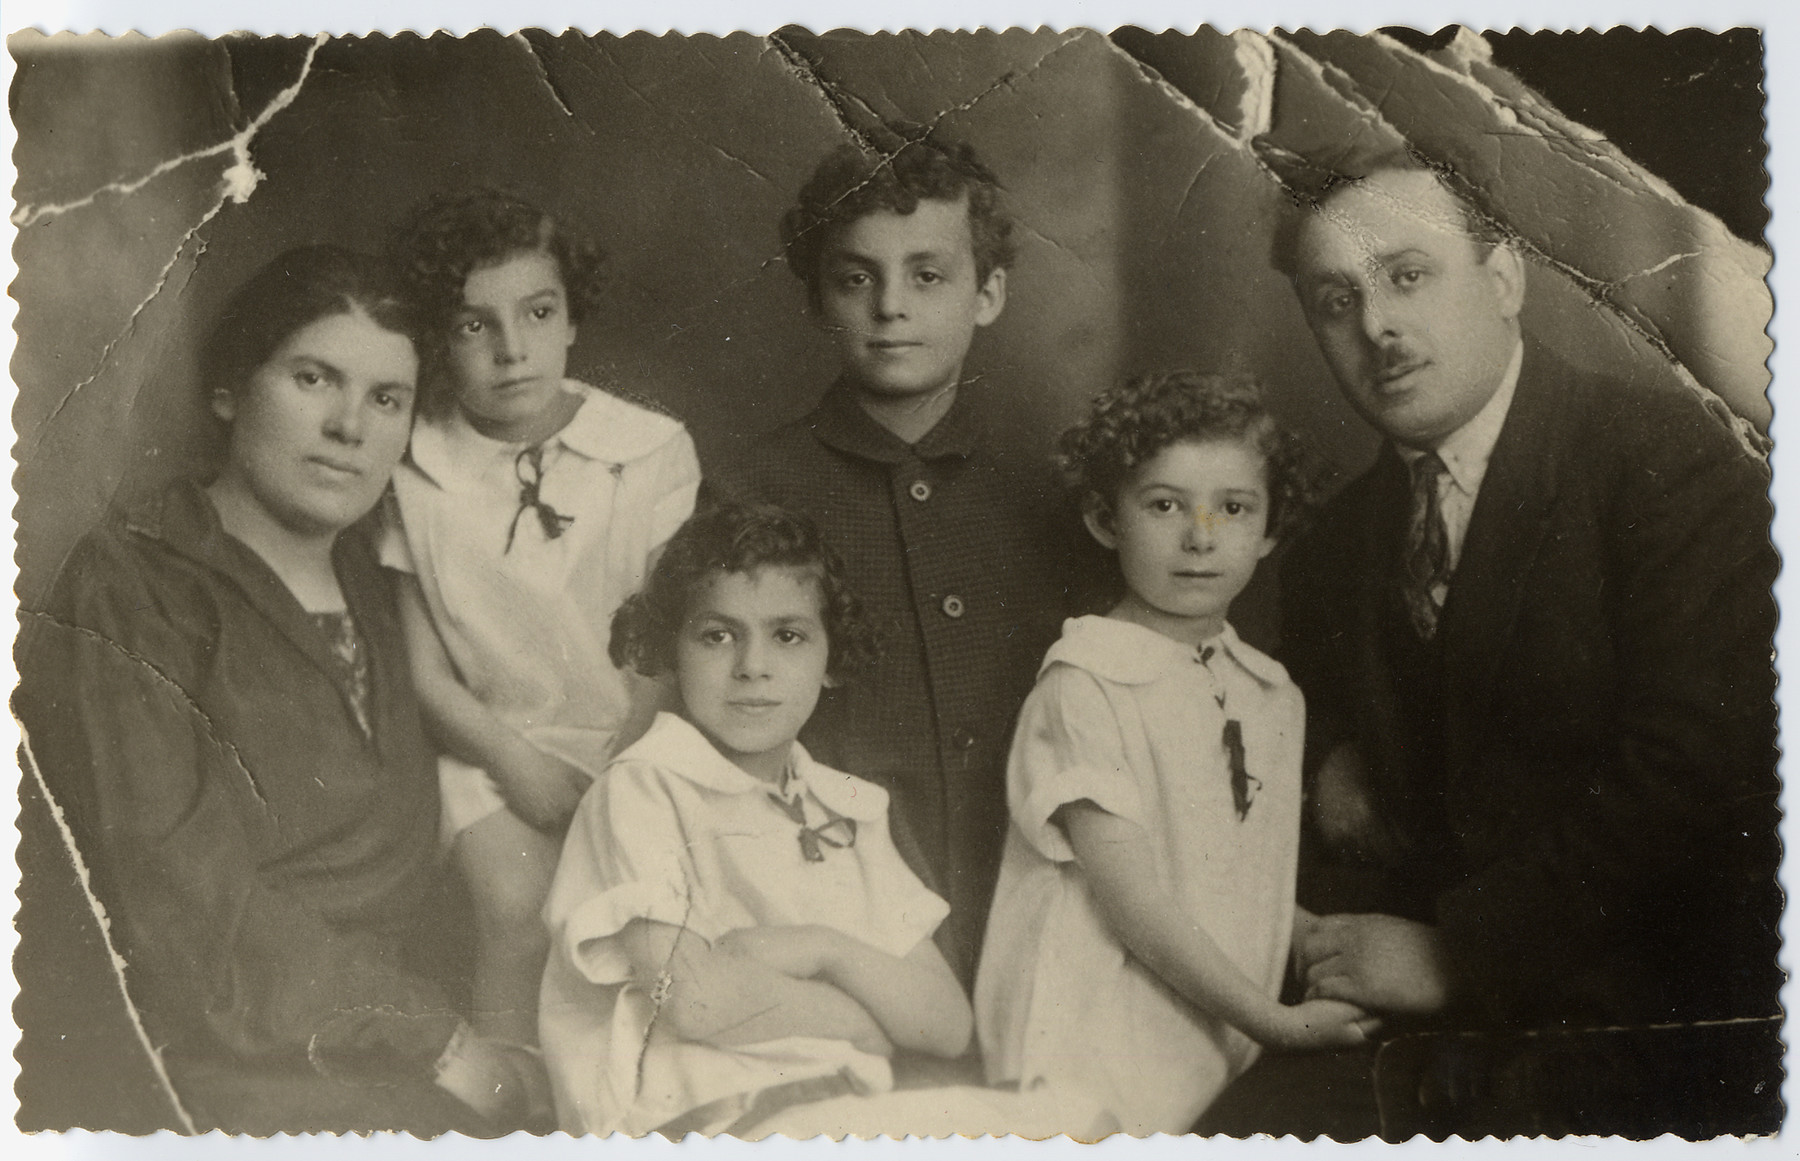 Portrait of the Lechtman family in Vienna, Austria.  Pictured from left to right are Feiga Blatt Lechtman, Luba, Hava, Sioma, Lea (Luba's twin sister) and Israel Lechtman.